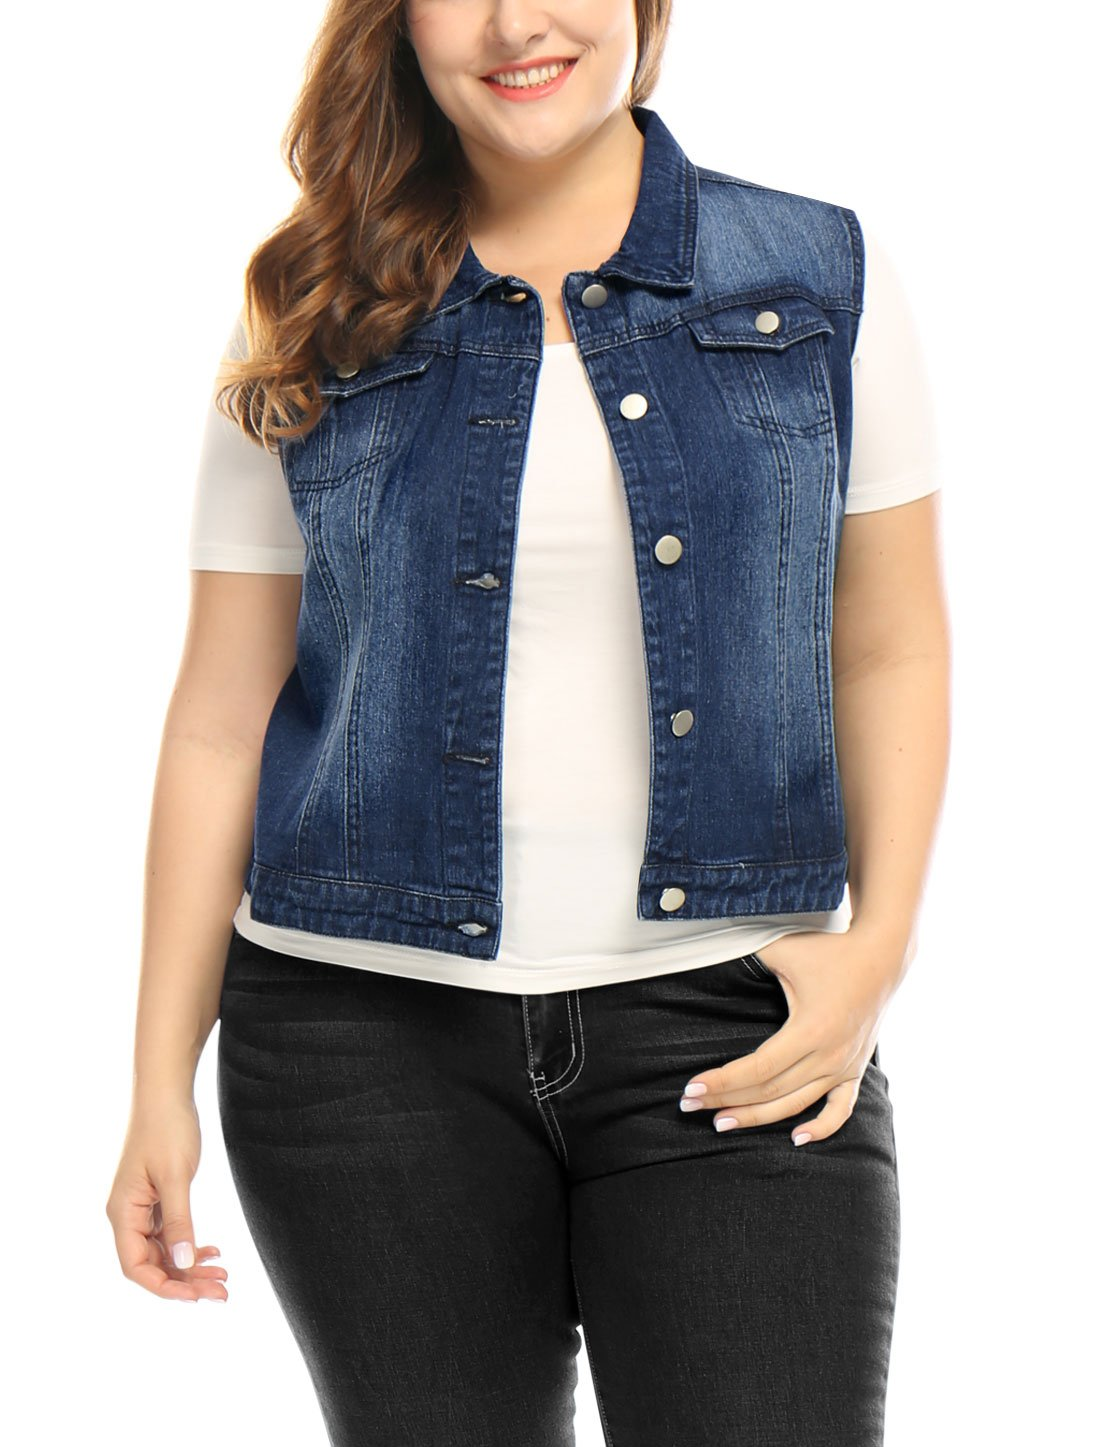 uxcell Women's Plus Size Single Breasted Denim Vest w Two Flap Chest Pockets s18040800it0293